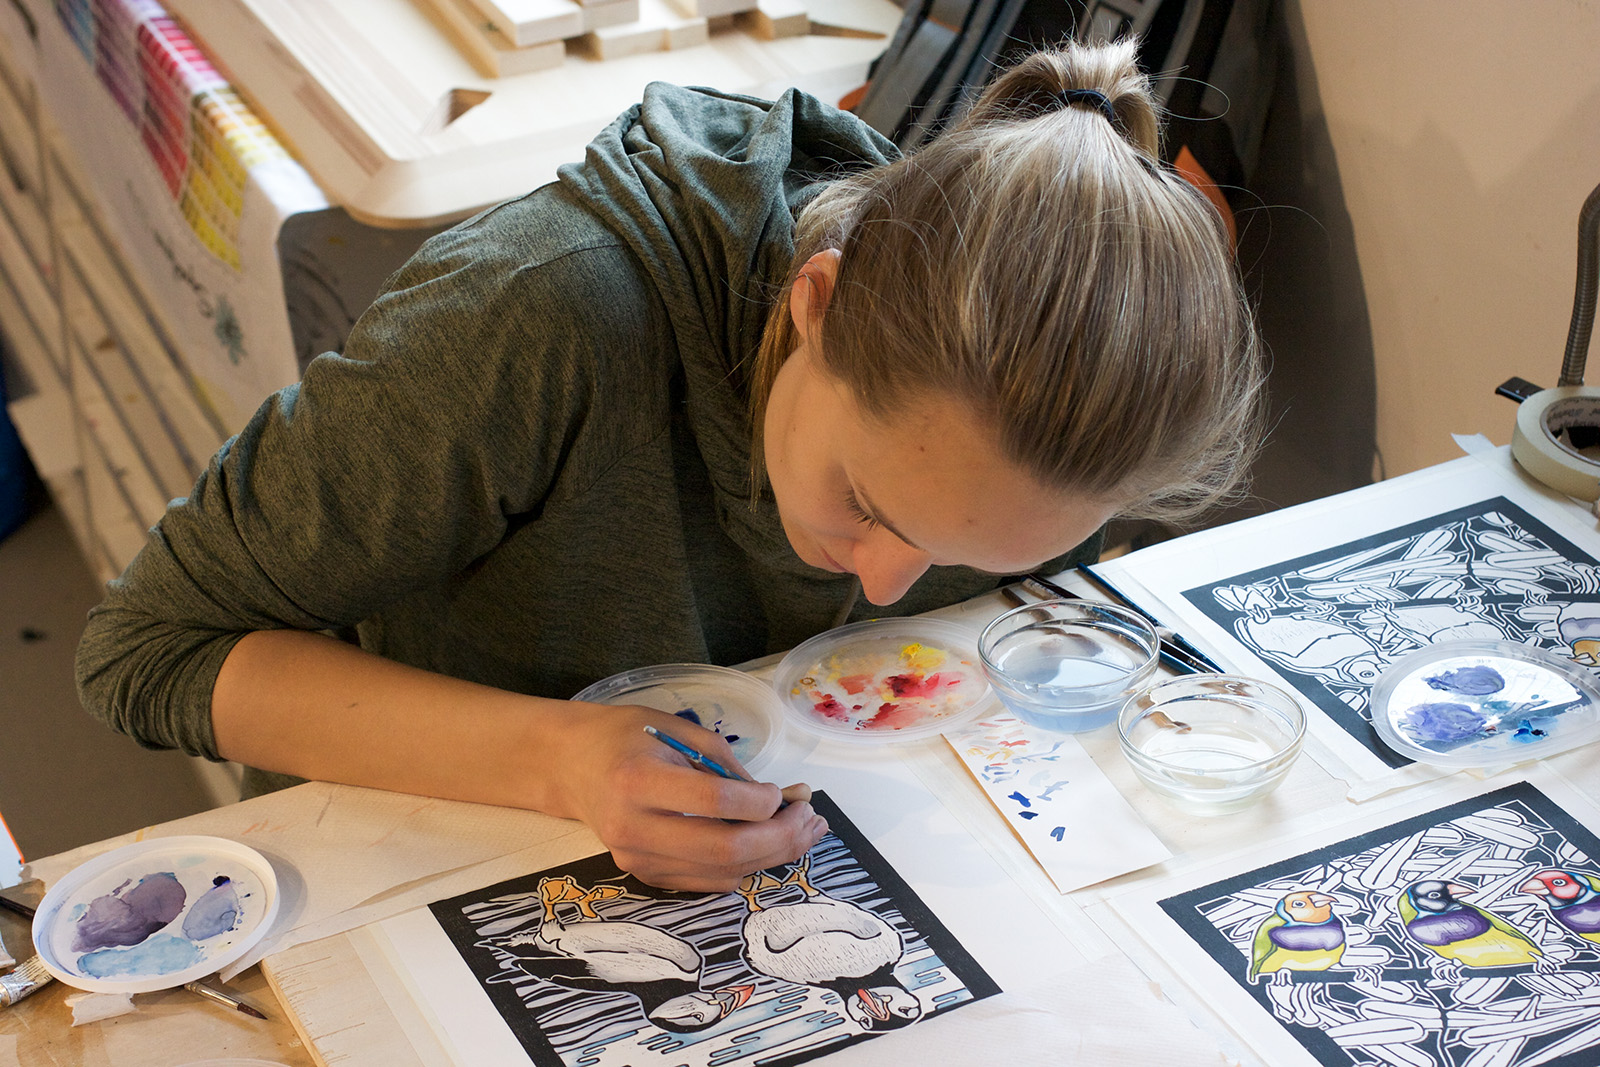 Student drawing in a studio